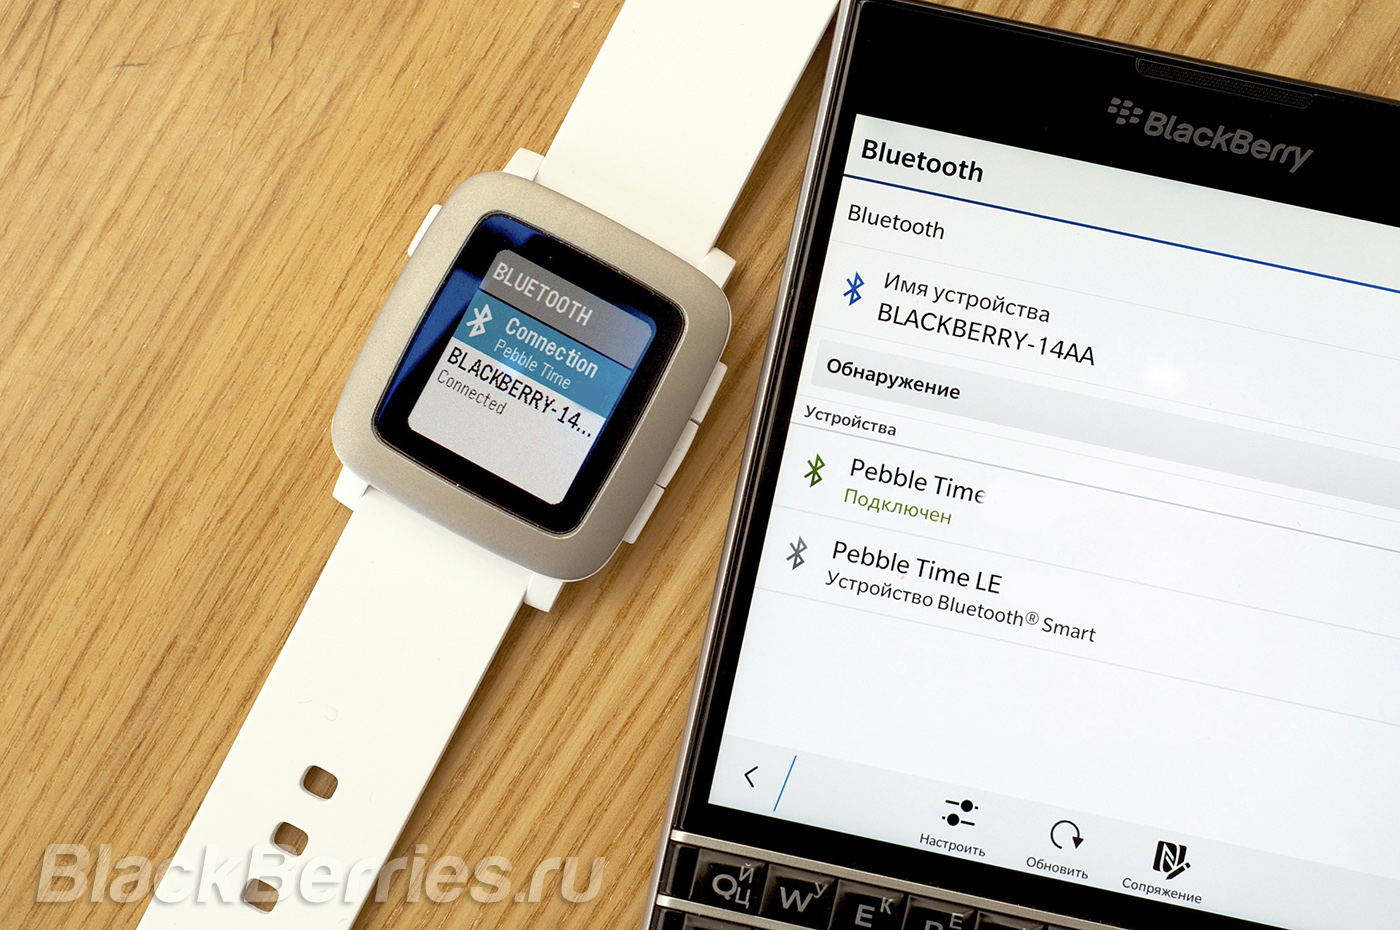 BlackBerry-Passport-Pebble-Time-20